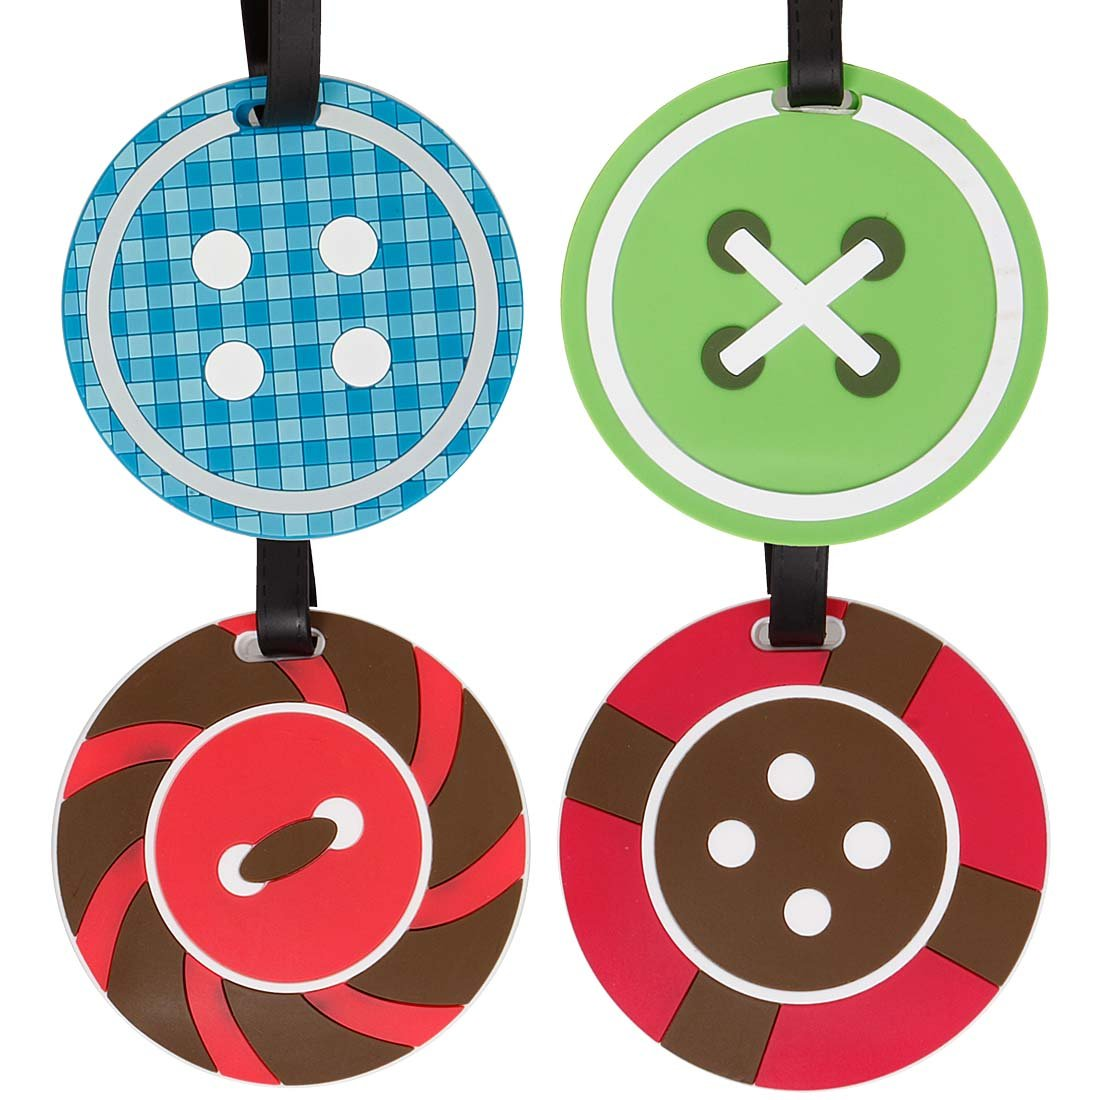 Bundle Monster 4pc Fun Mixed Design Silicone Luggage ID Bag Tags - Set 4: Button Down